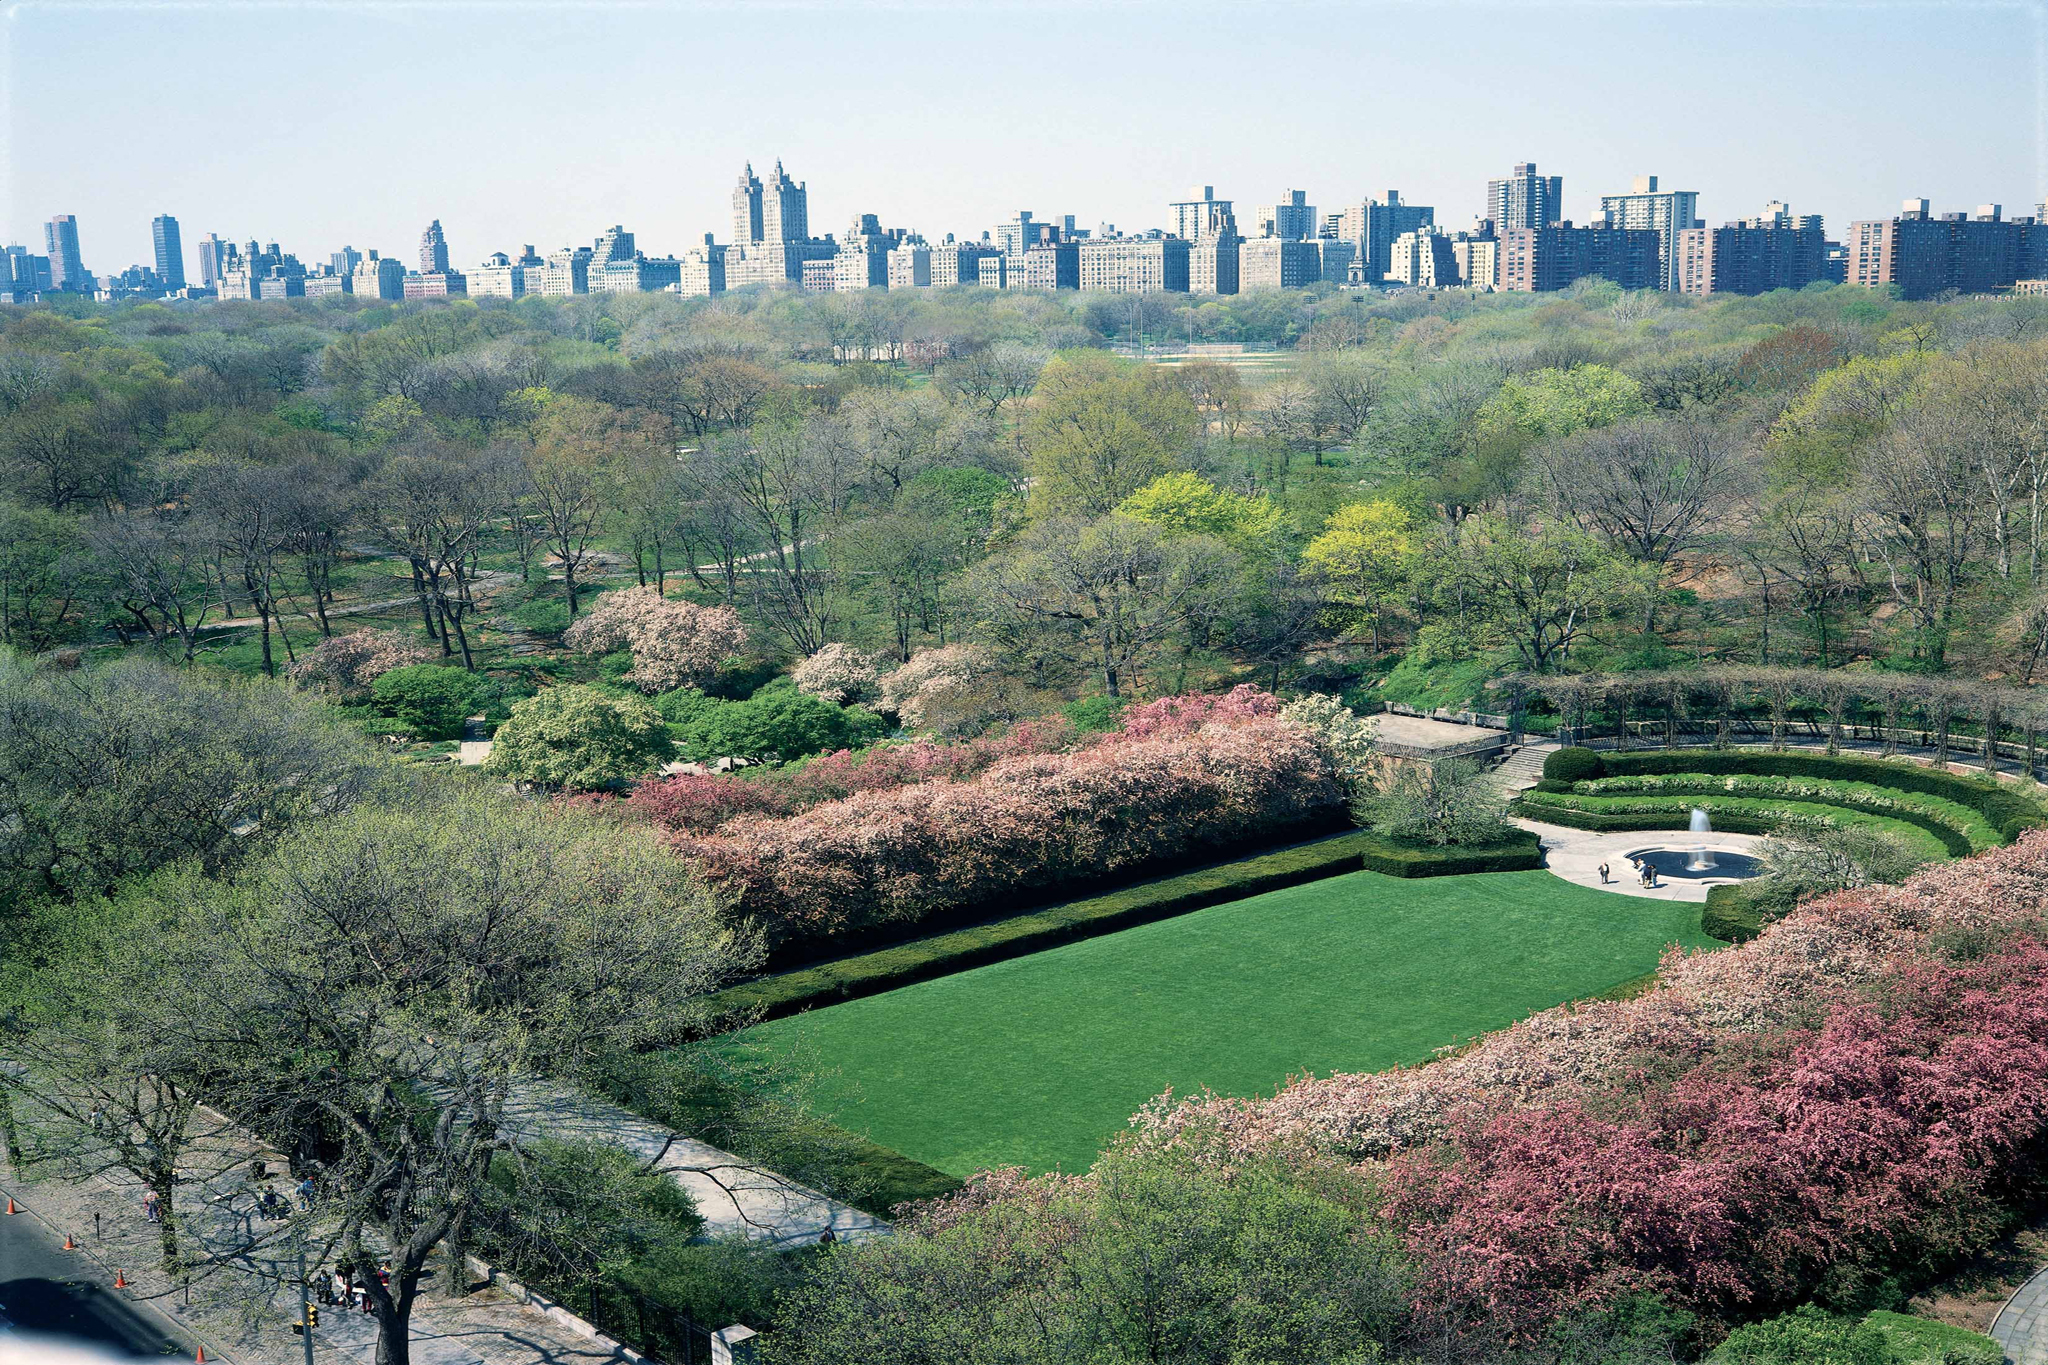 Smell the roses at Central Park's Conservatory Garden